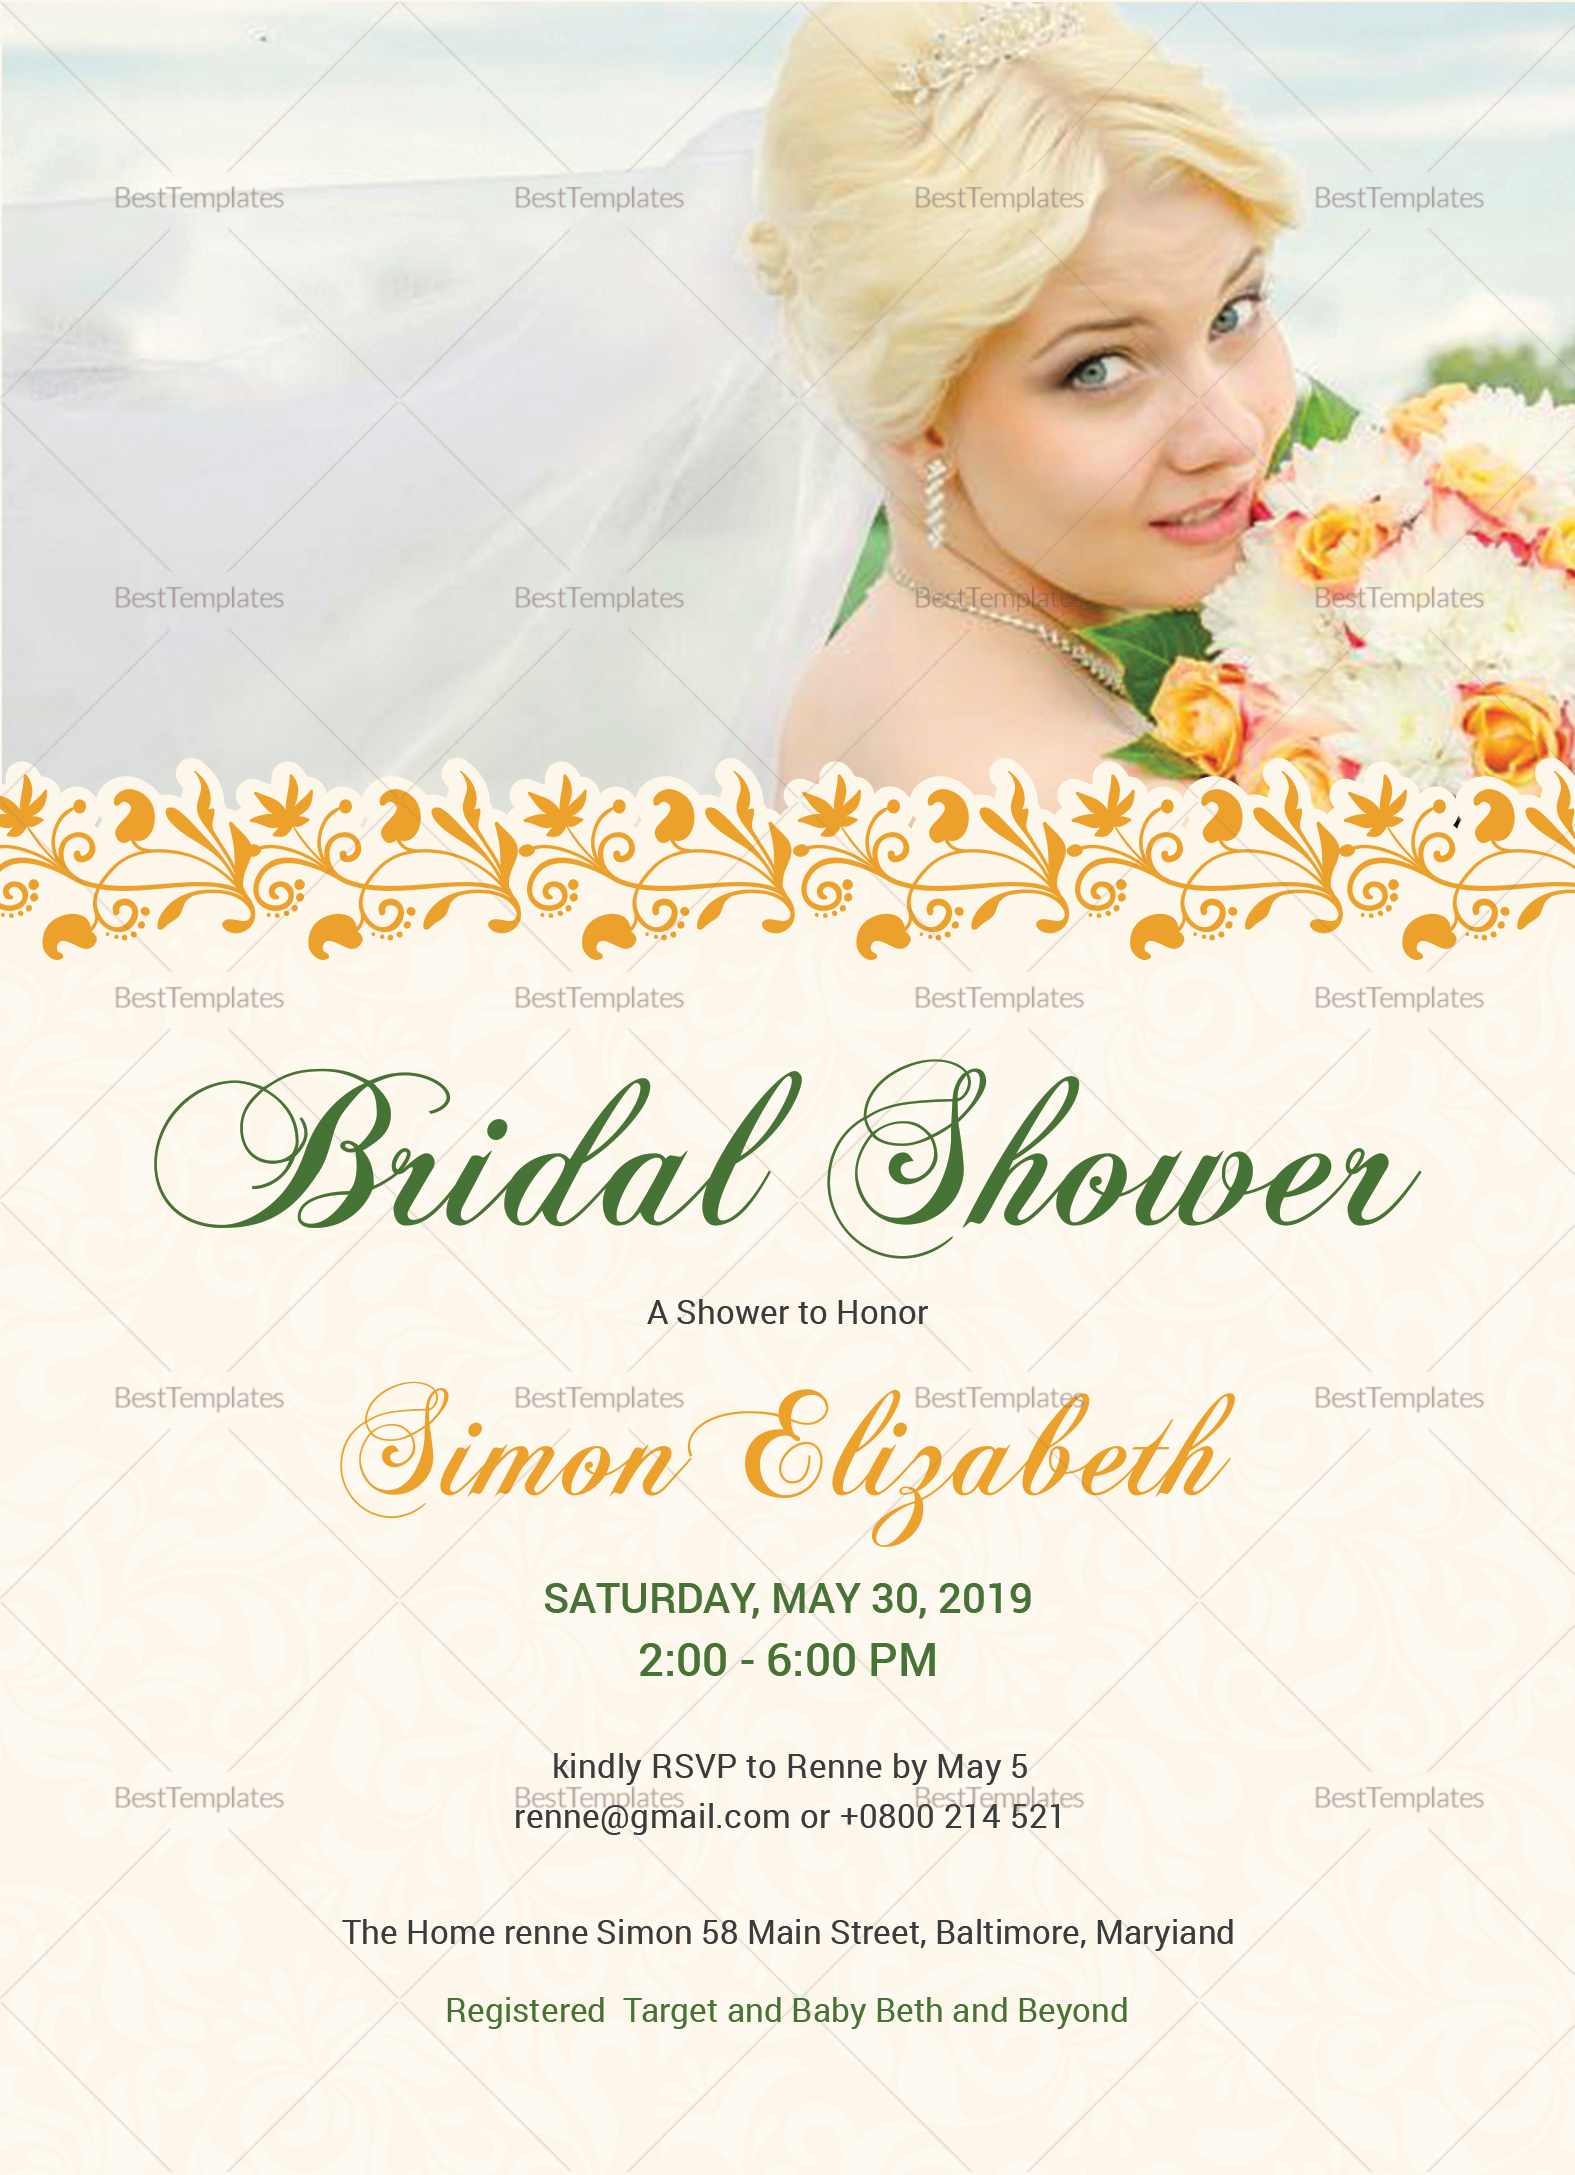 Bridal Shower Invitation Card Design Template